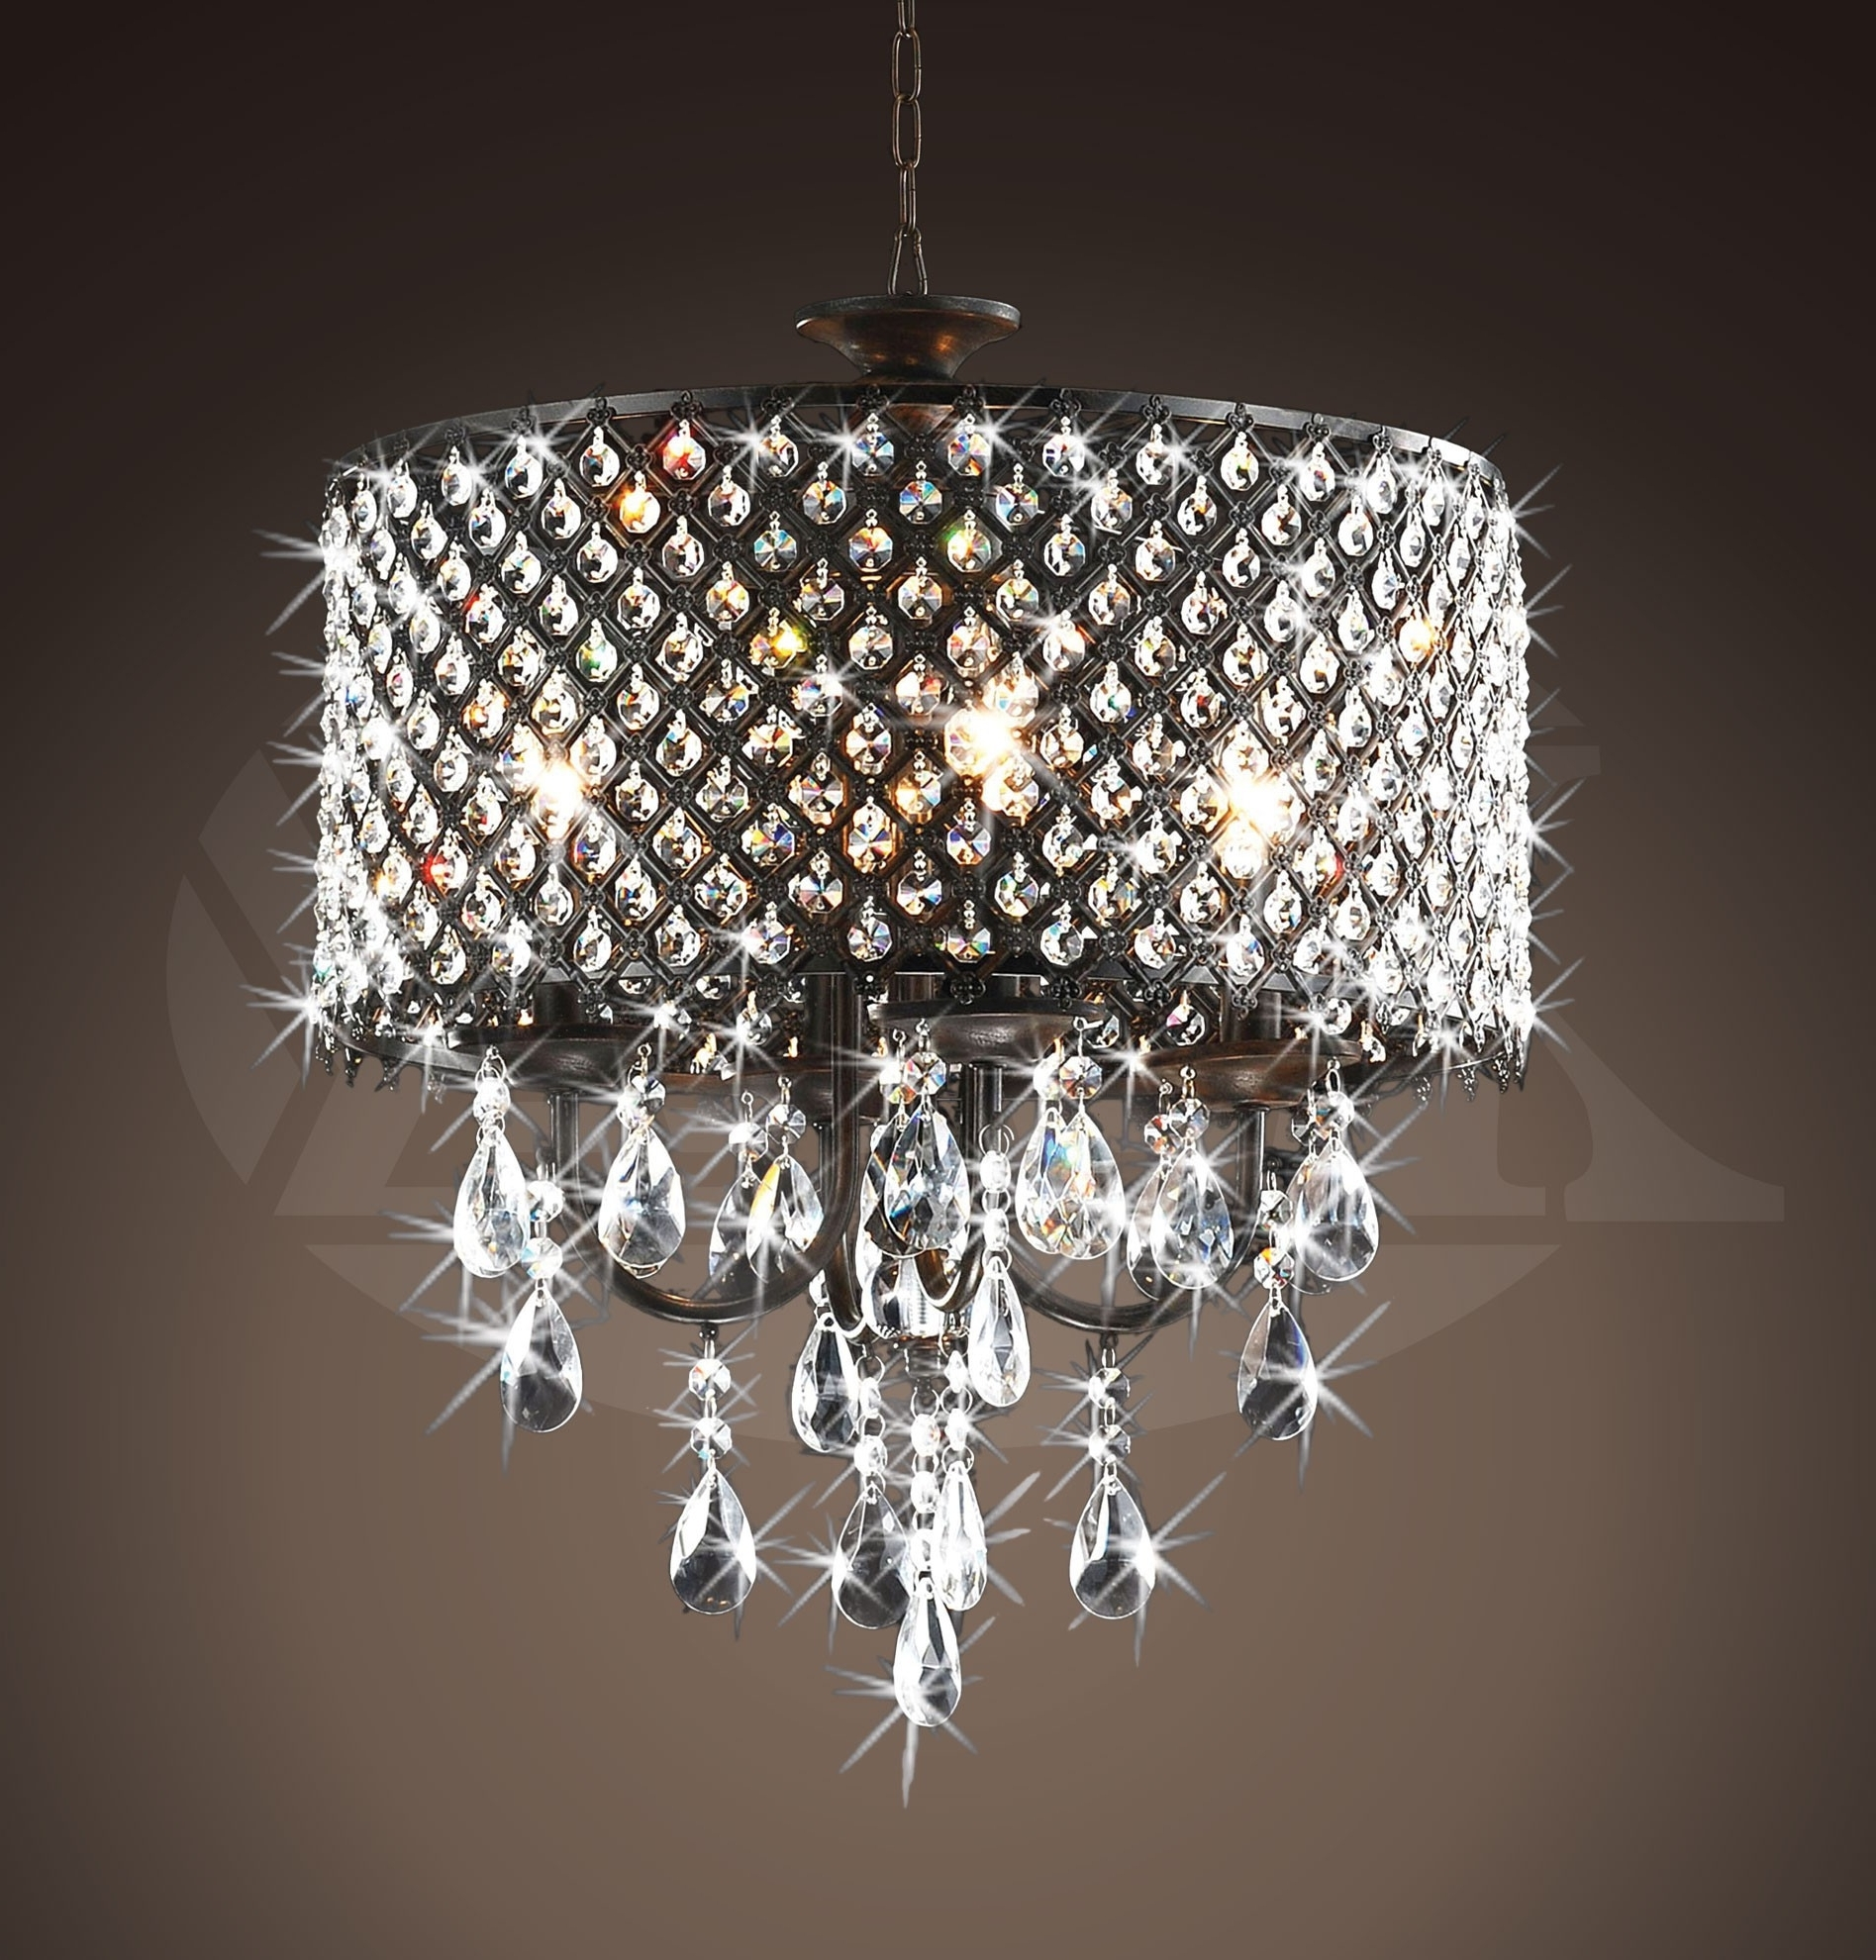 Chandeliers : Cheap Crystal Chandeliers Beautiful Chandelier Lights In Well Known Beautiful Chandelier (View 6 of 20)